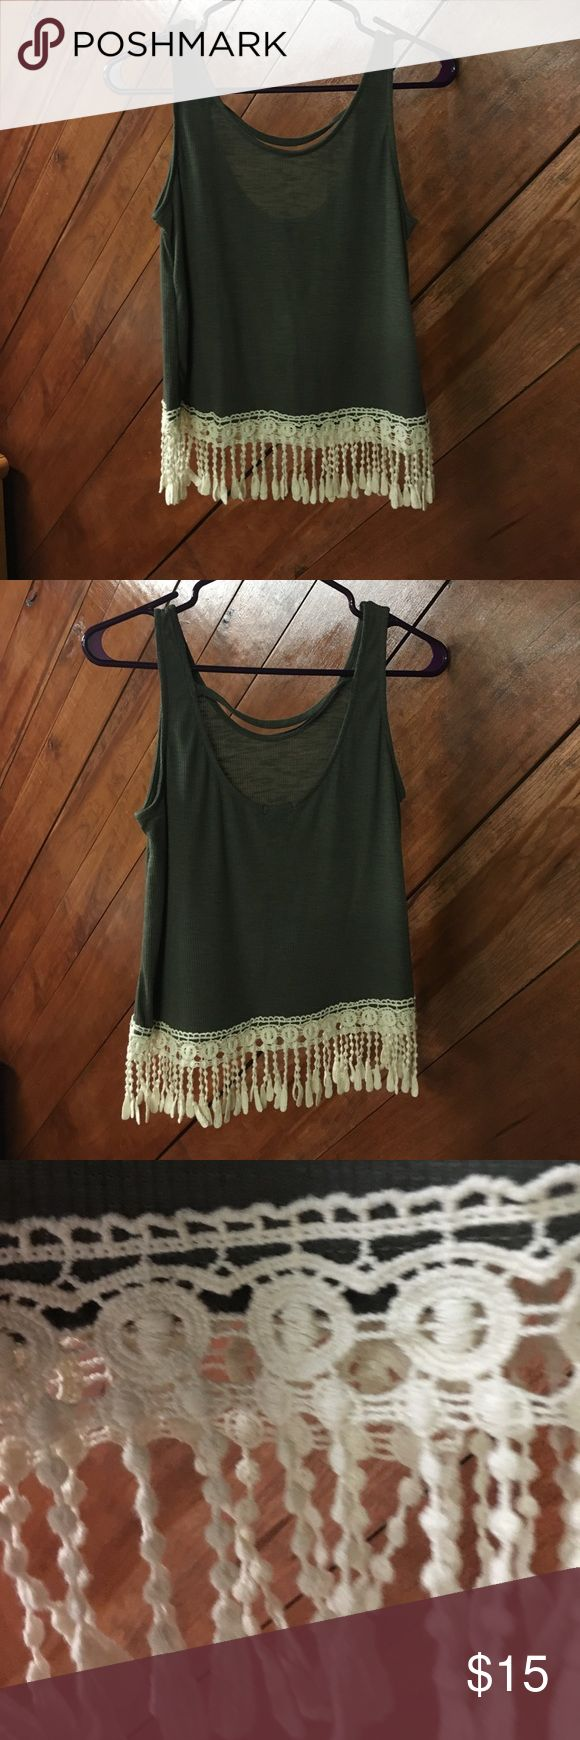 NWT Rue 21 tank army green Rue 21 tank top. crochet fringe detail at the bottom. size medium. NWT. Rue 21 Tops Tank Tops